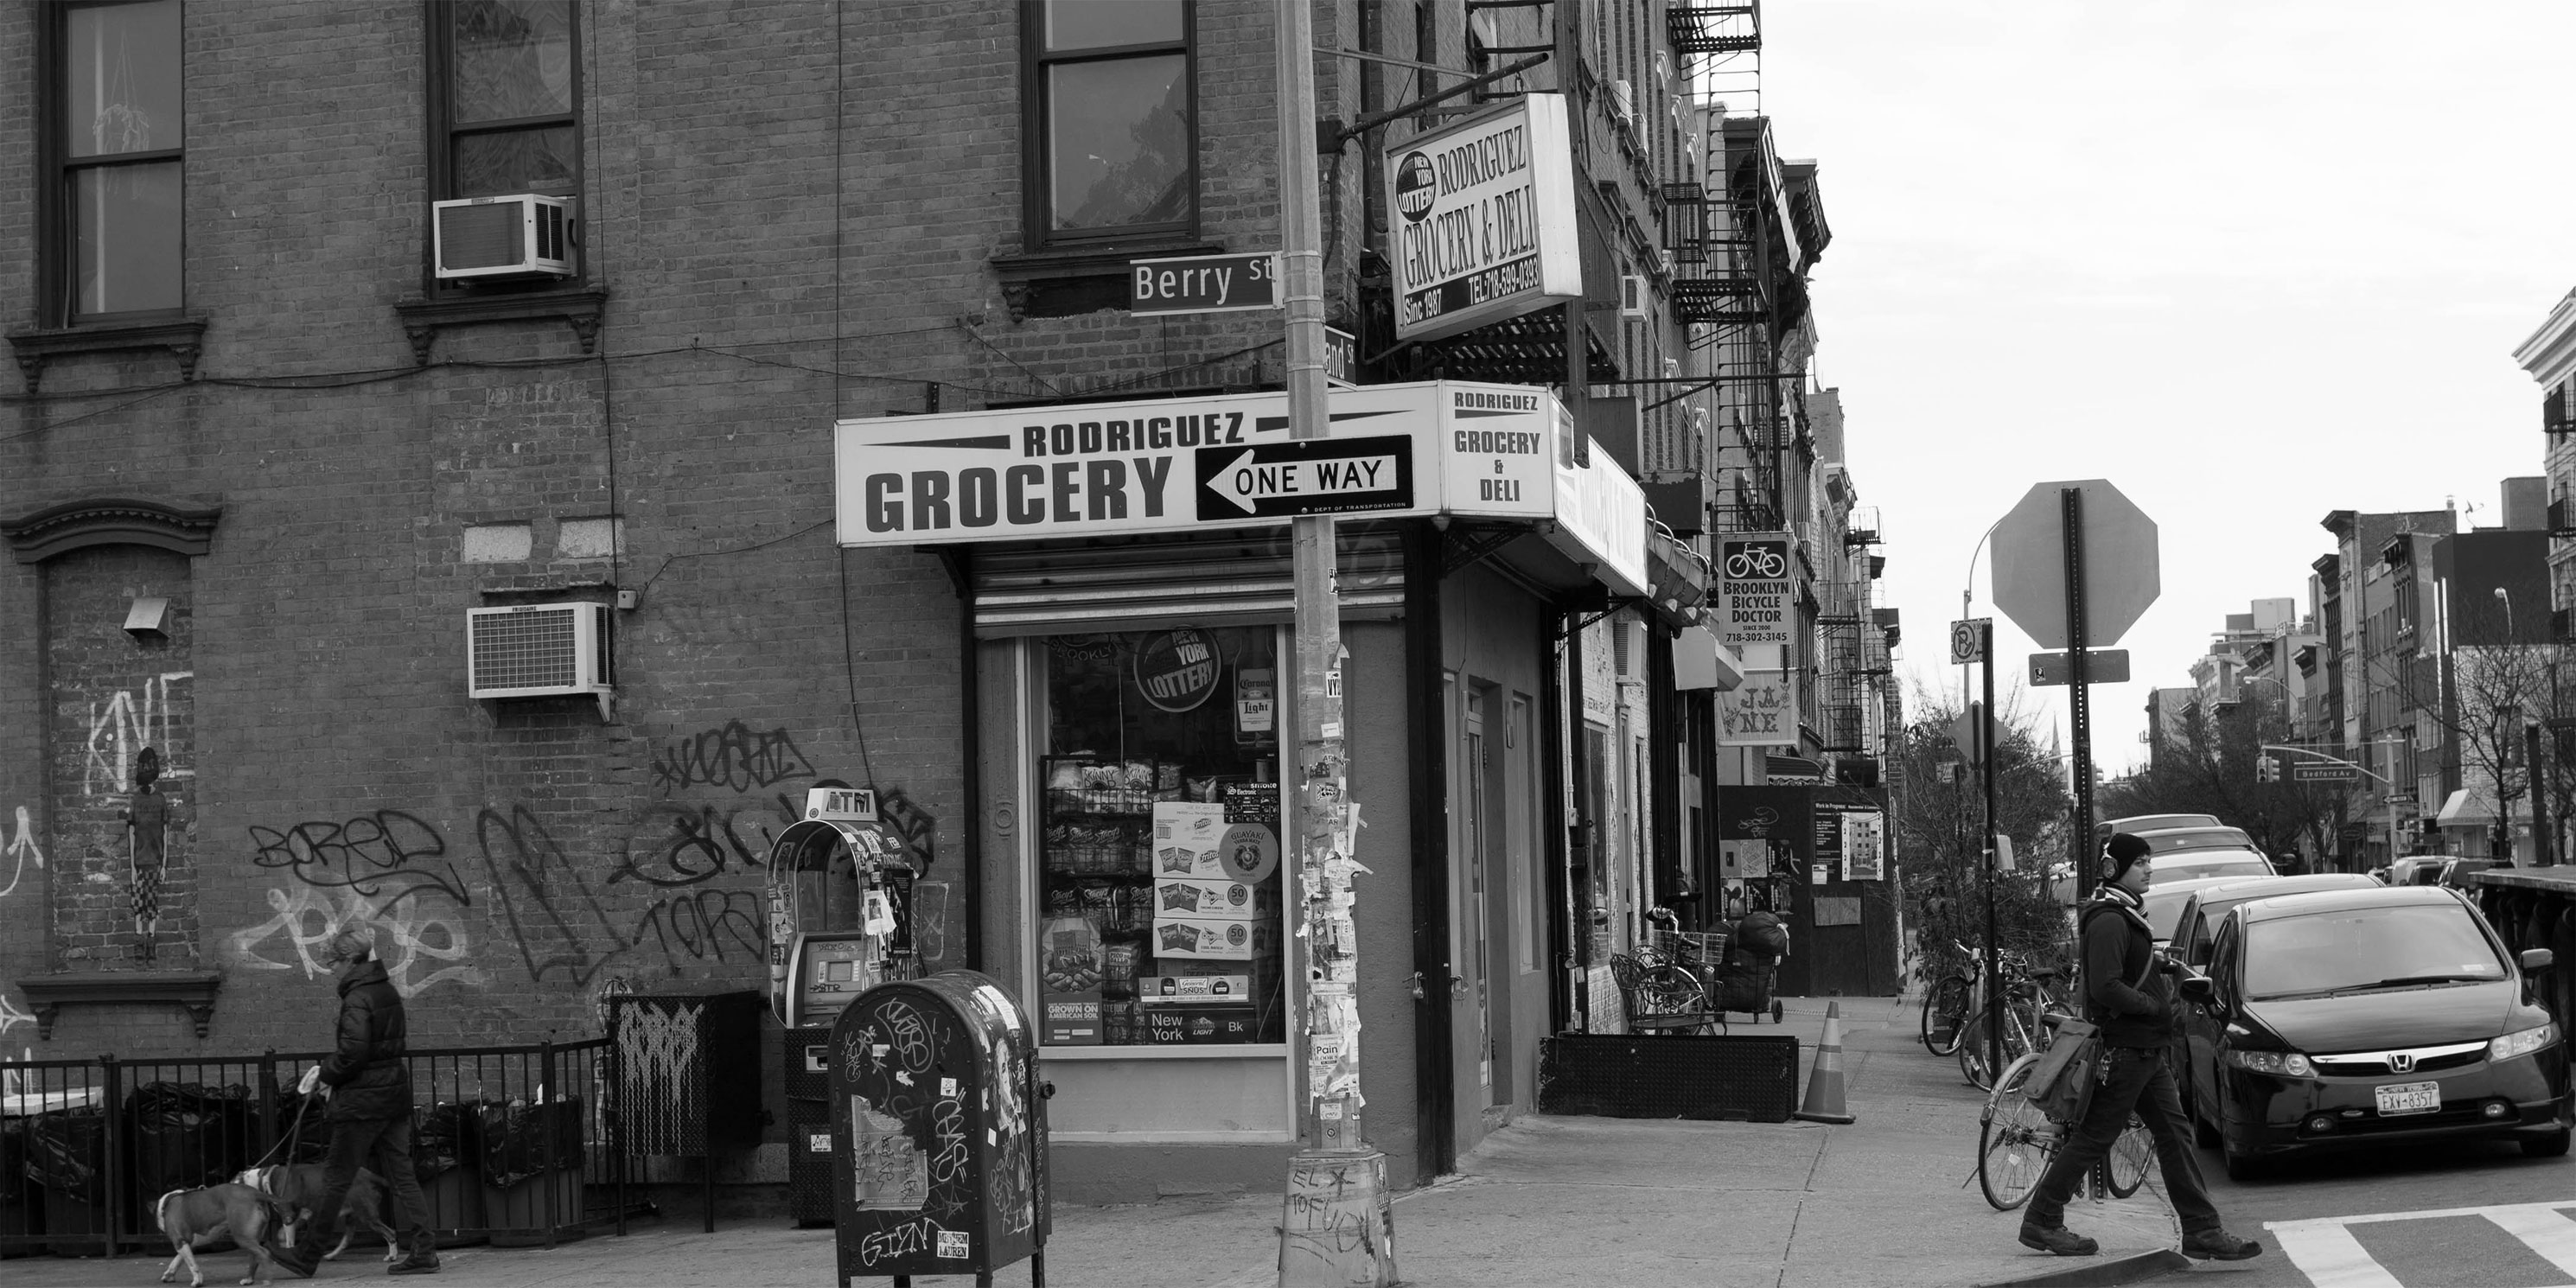 Corner grocery store in Williamsburg, Brooklyn